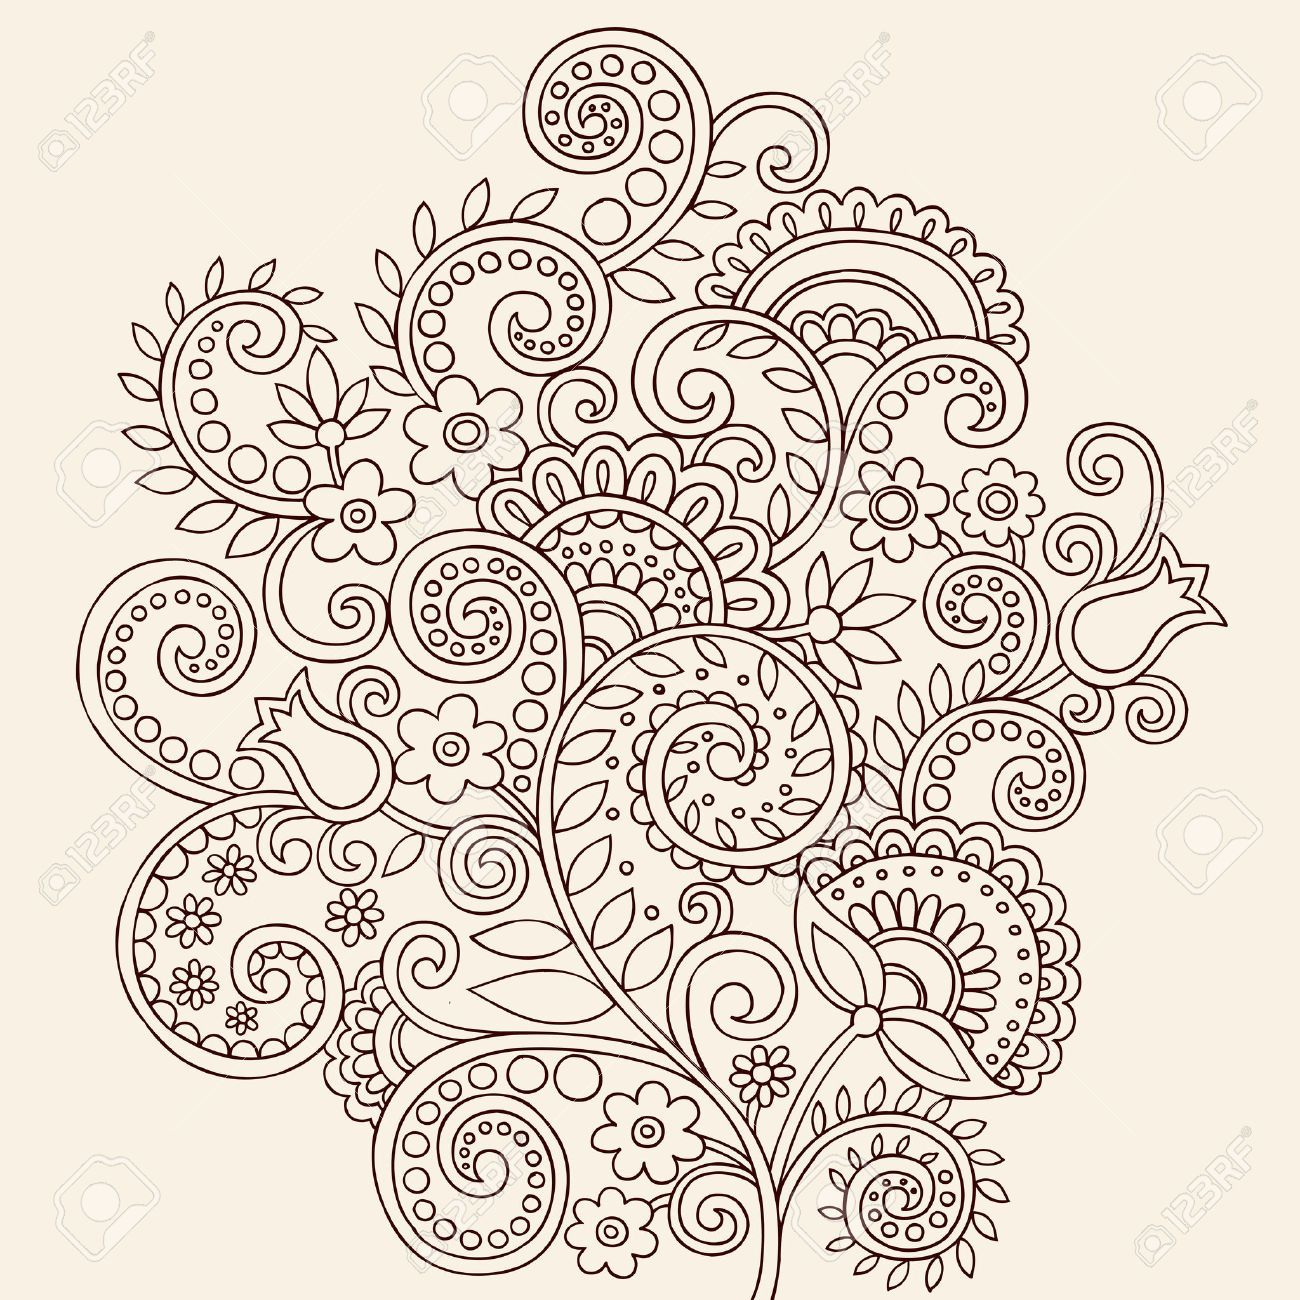 1300x1300 Hand Drawn Henna Mehndi Tattoo Flowers And Paisley Border Doodle